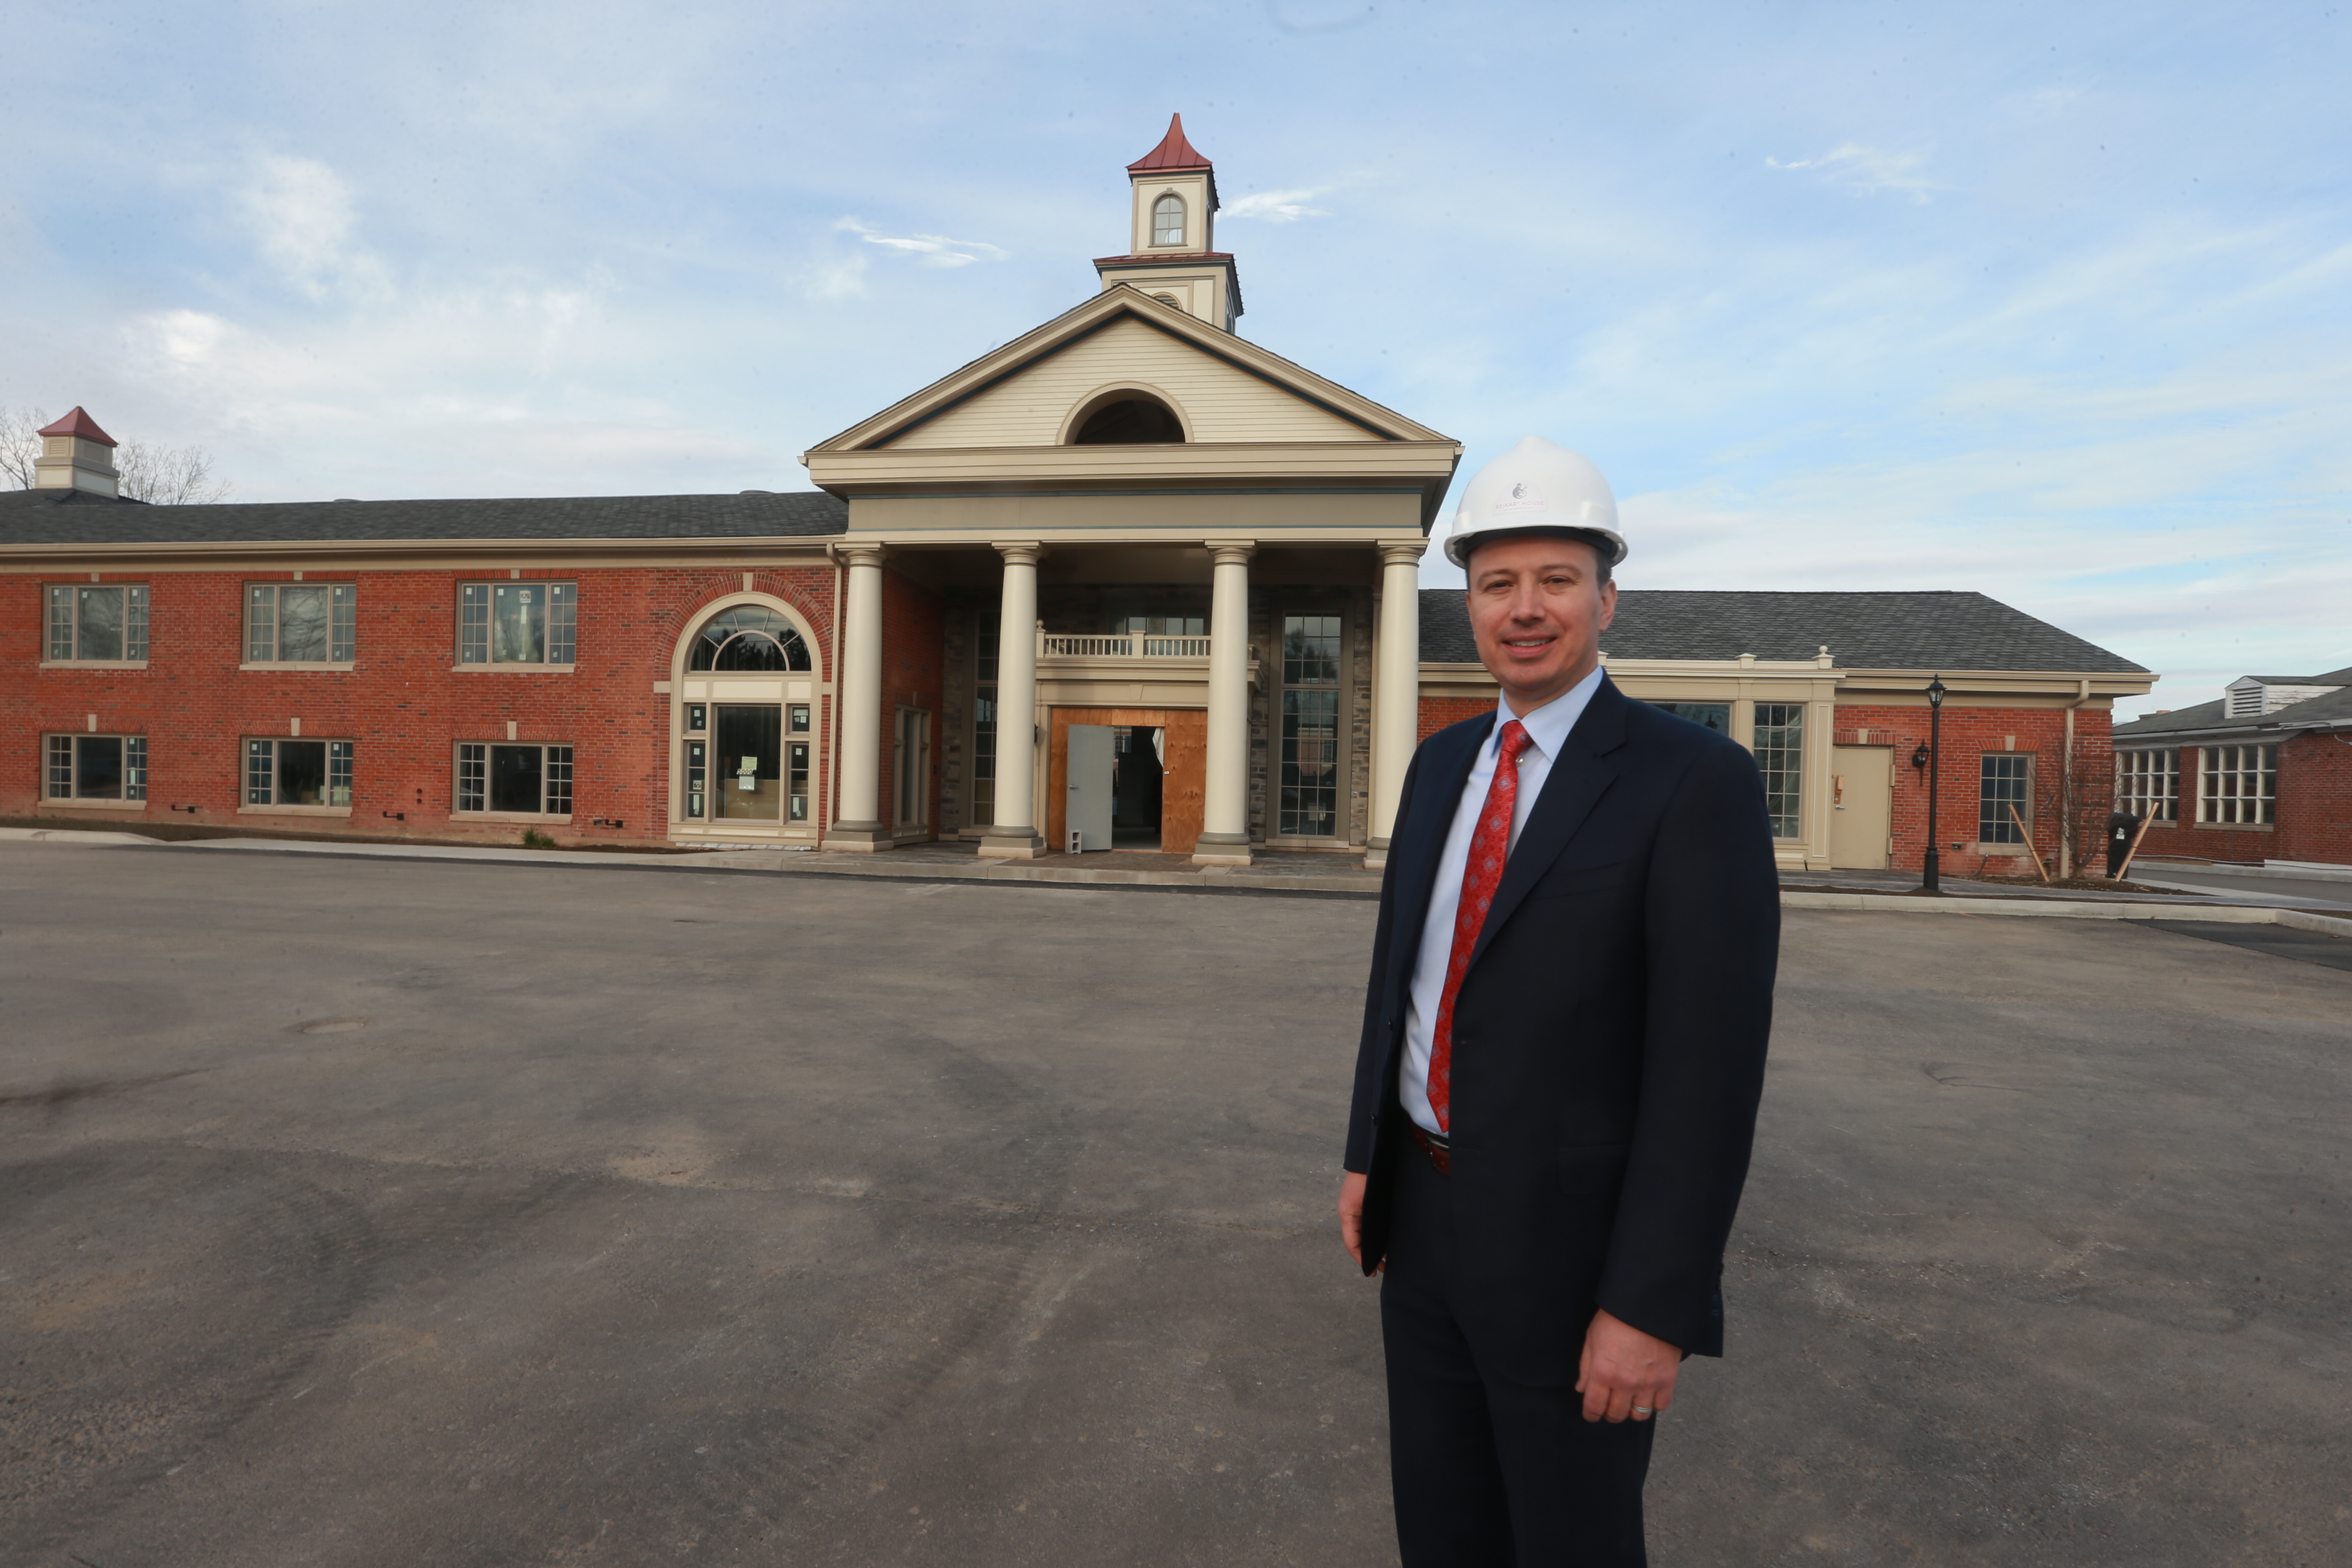 Paul Bohdan Iskalo, president, and CEO of Iskalo Development Corp. at the former Lord Amherst, now Reikart House  Boutique Hotel, in Amherst. The Appellate Division, Fourth Department, is expected to rule soon on the Amherst Industrial Development Agency's appeal of a lower court's ruling on tax breaks sought by Iskalo on the former Lord Amherst project.   (John Hickey/Buffalo News)